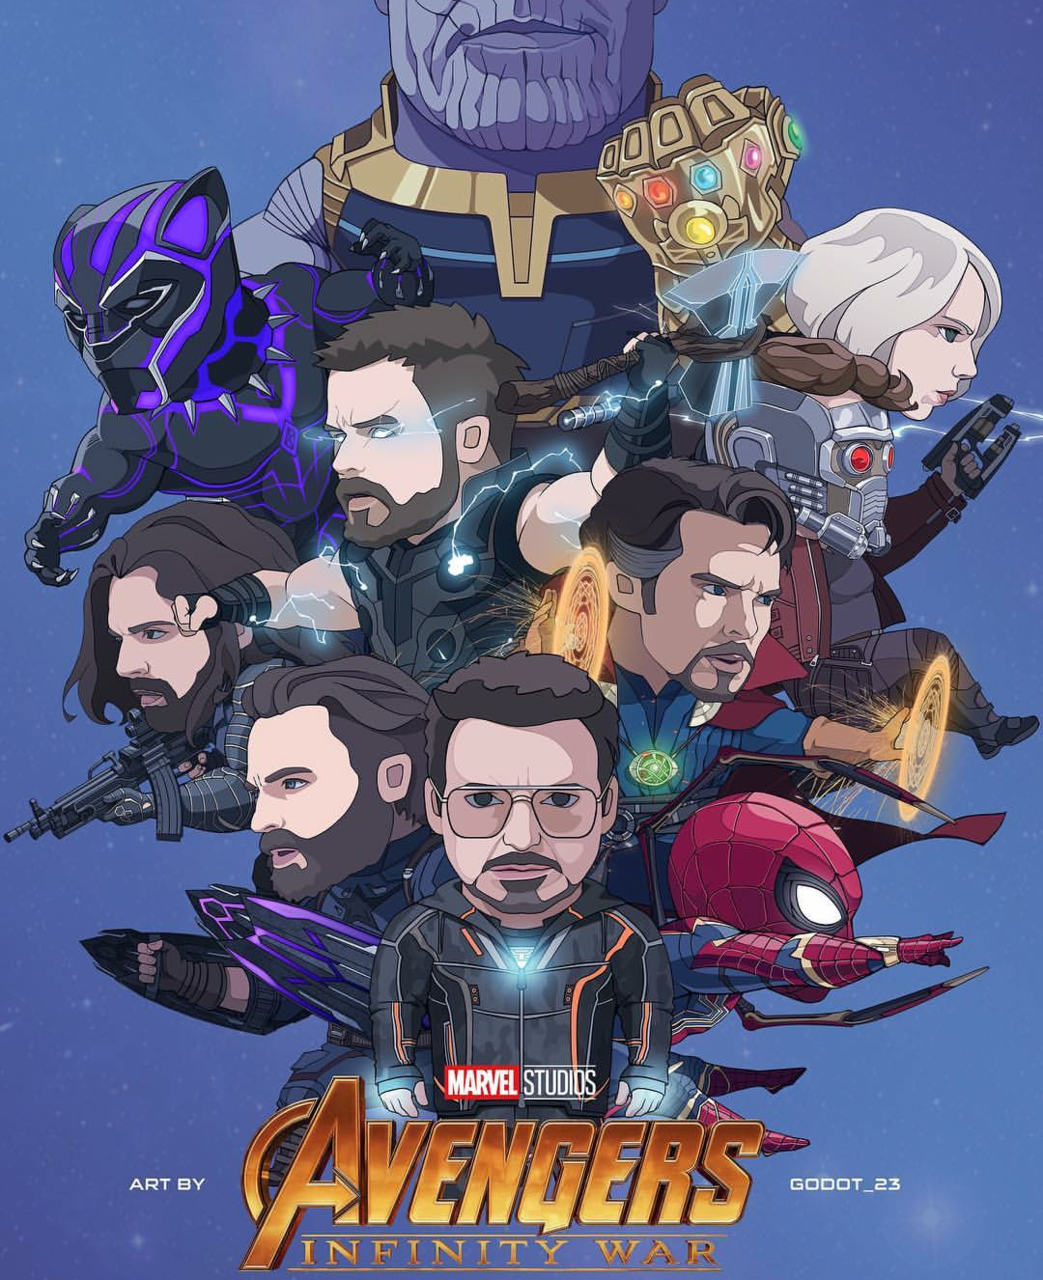 thor, black panther, doctor strange and captain america